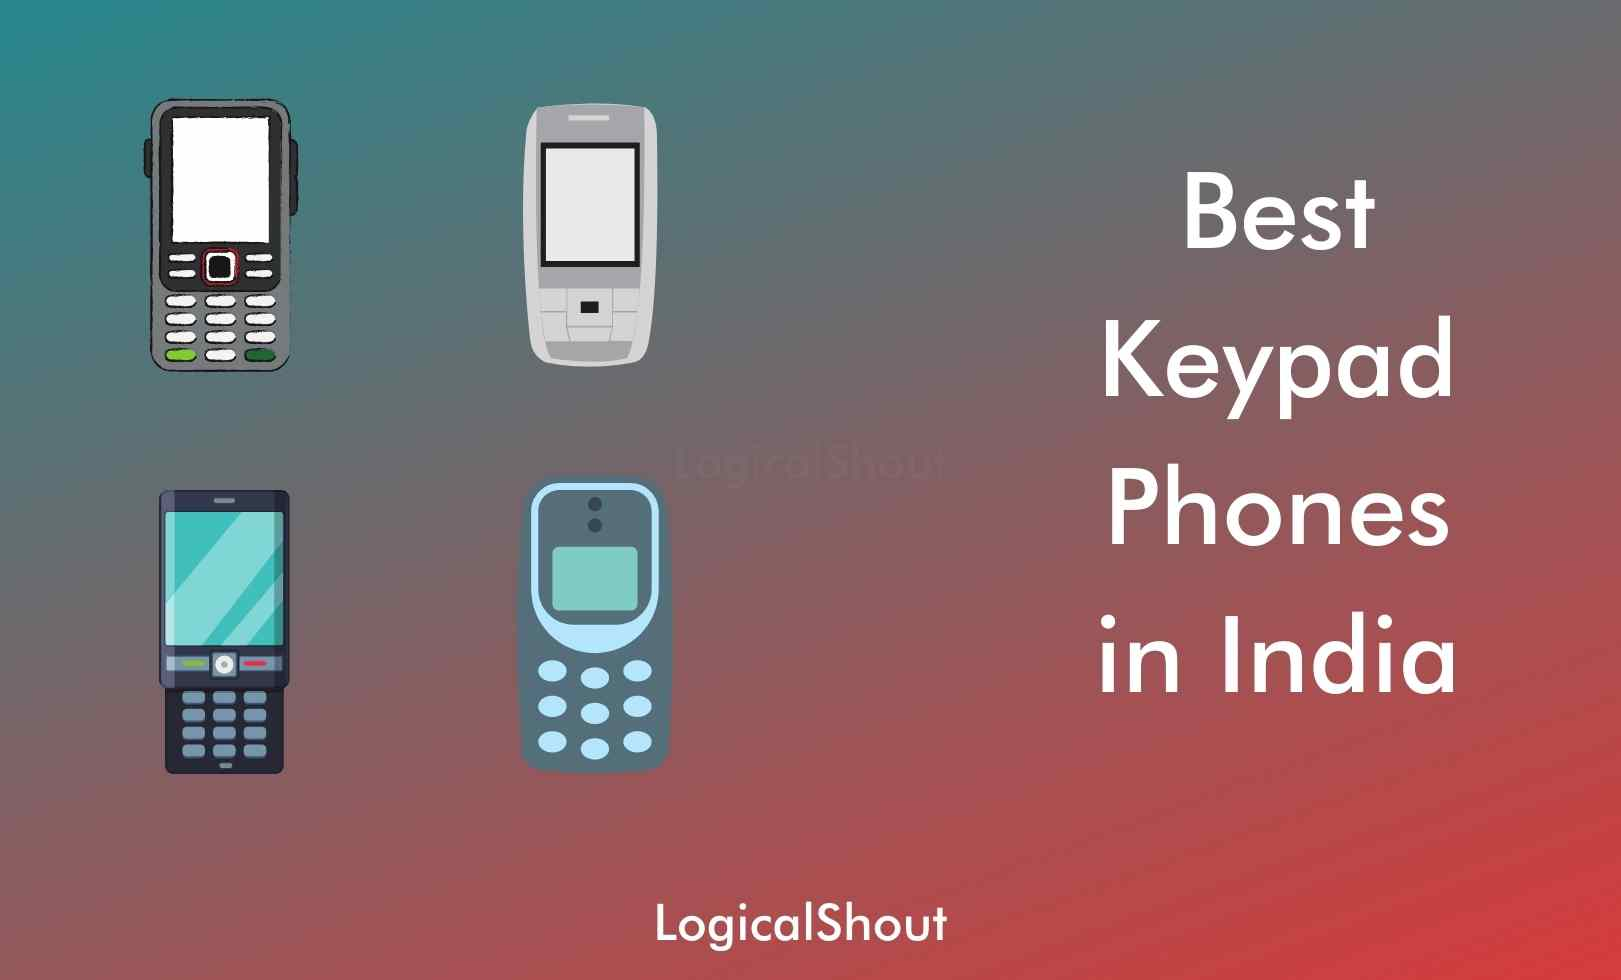 Best Keypad Phones in India